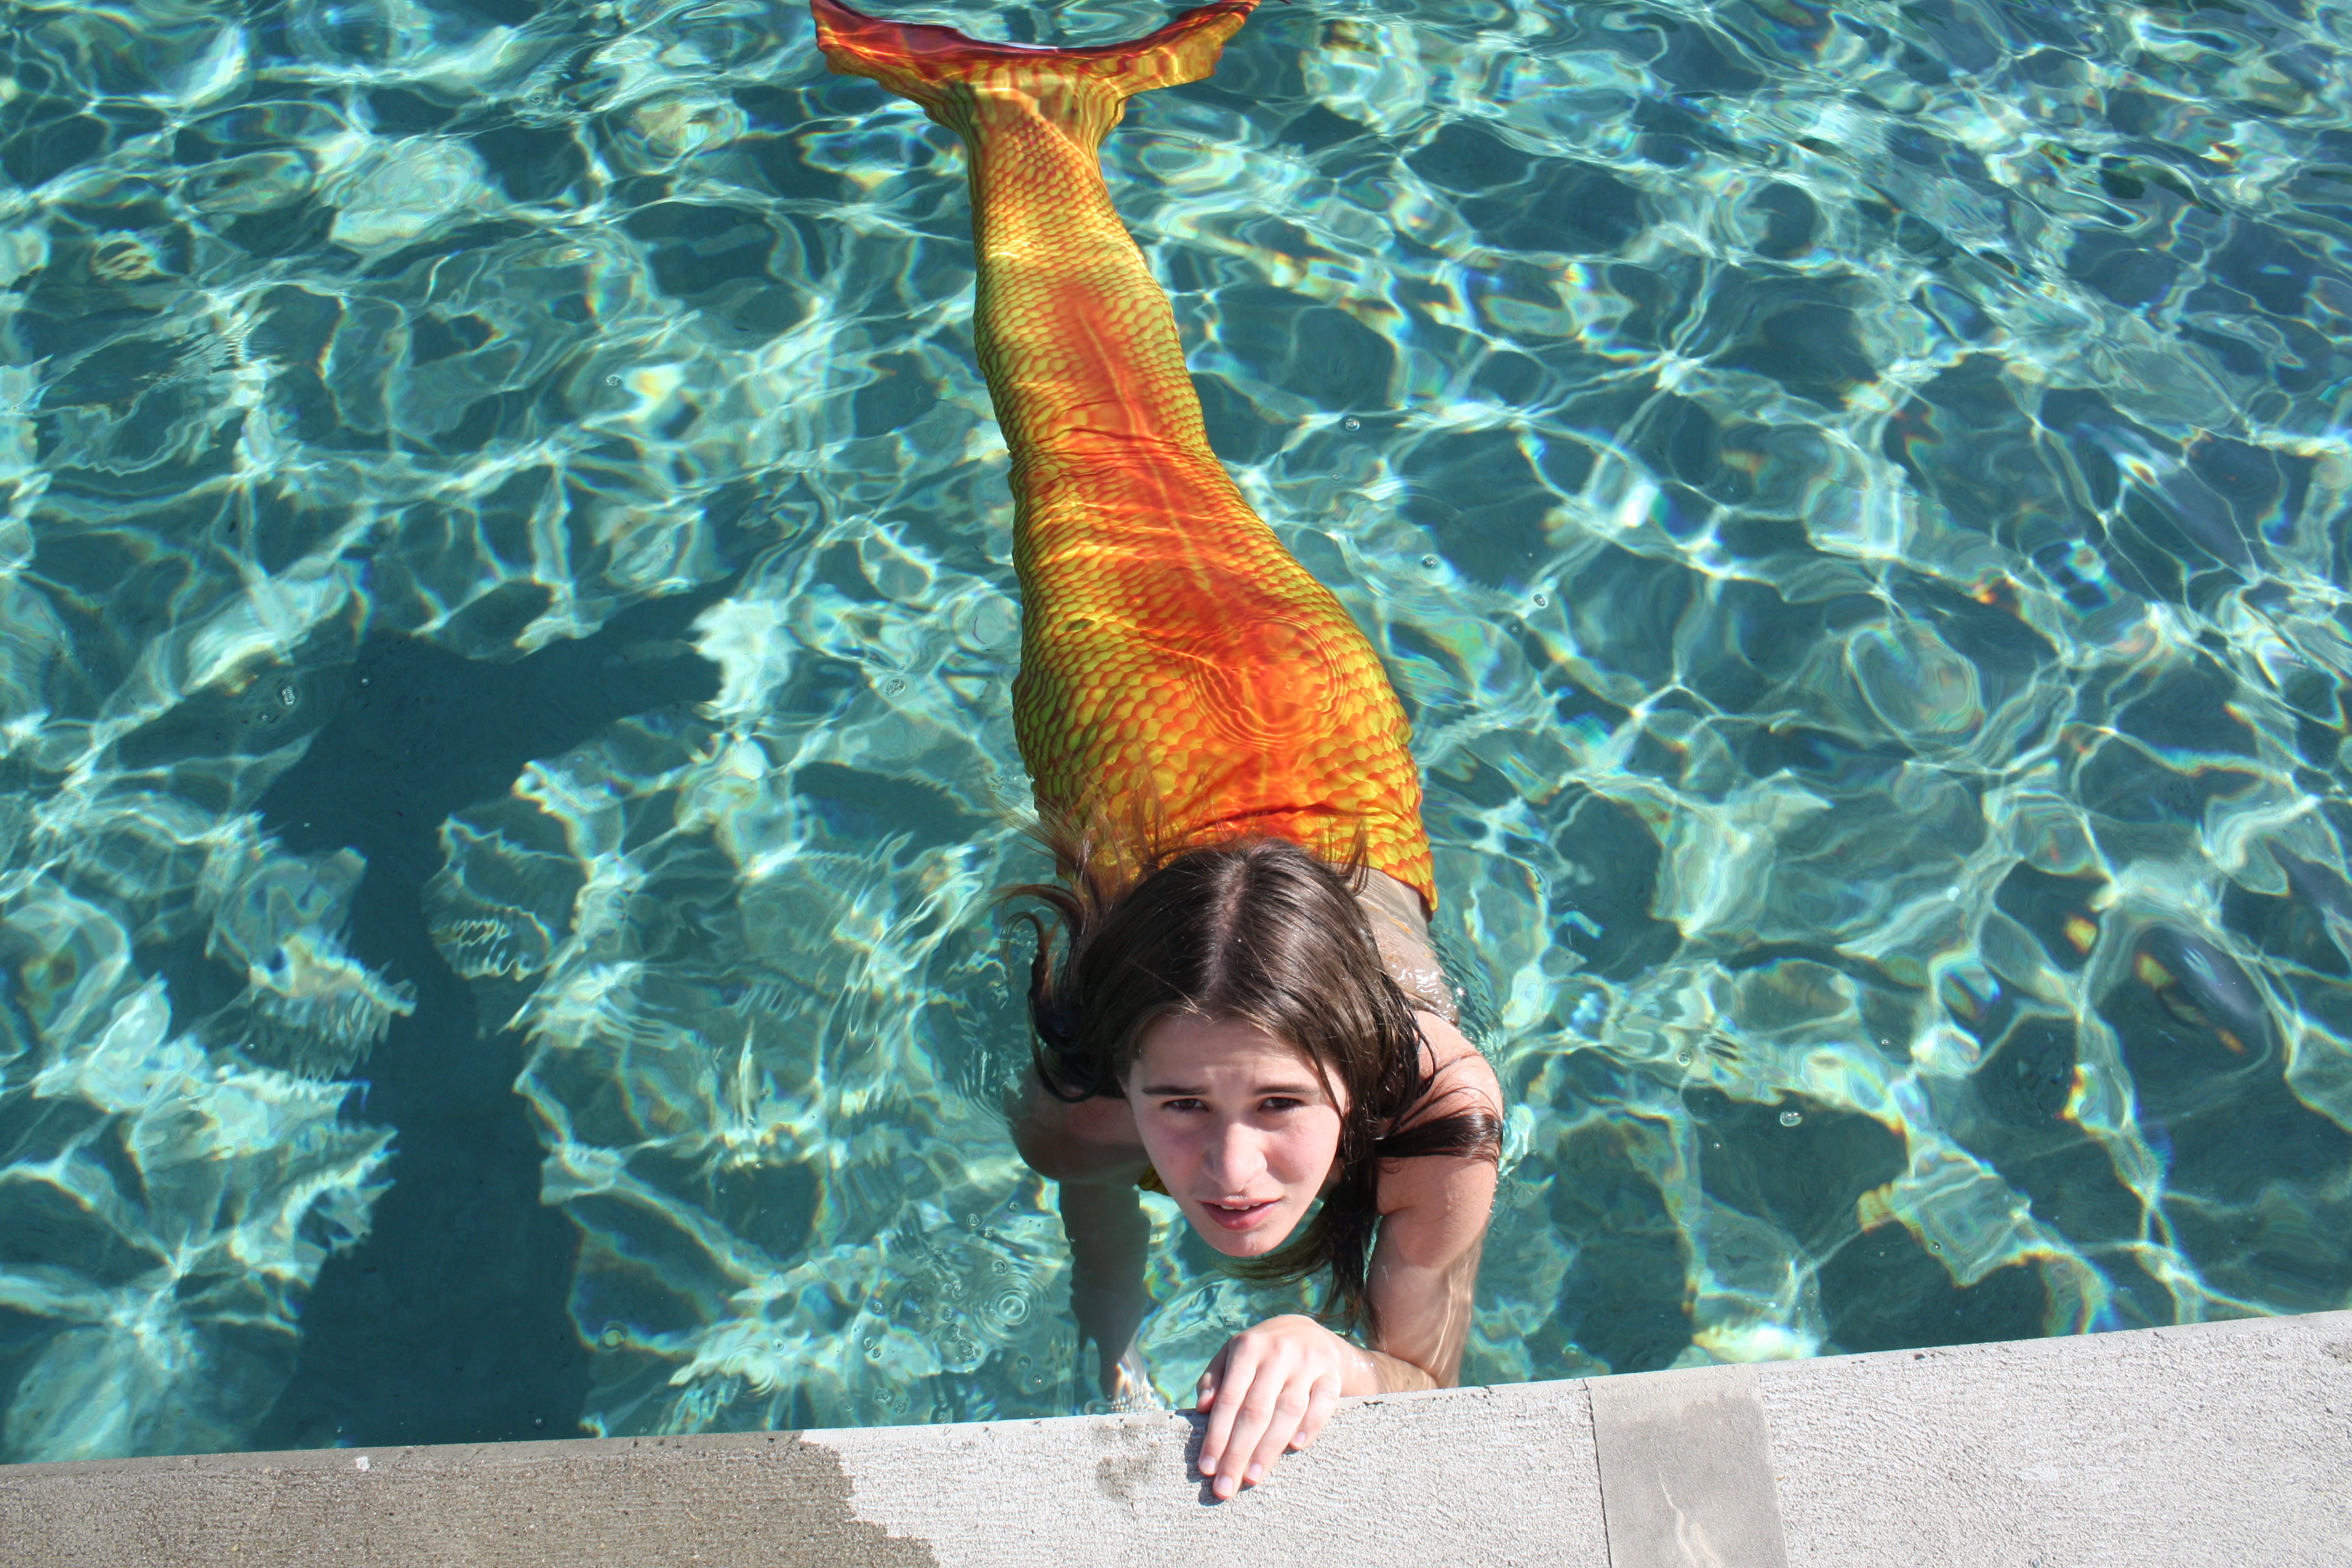 My-h2o-mermaid-tail-h2o-just-add-water-32250071-4272-2848.jpg